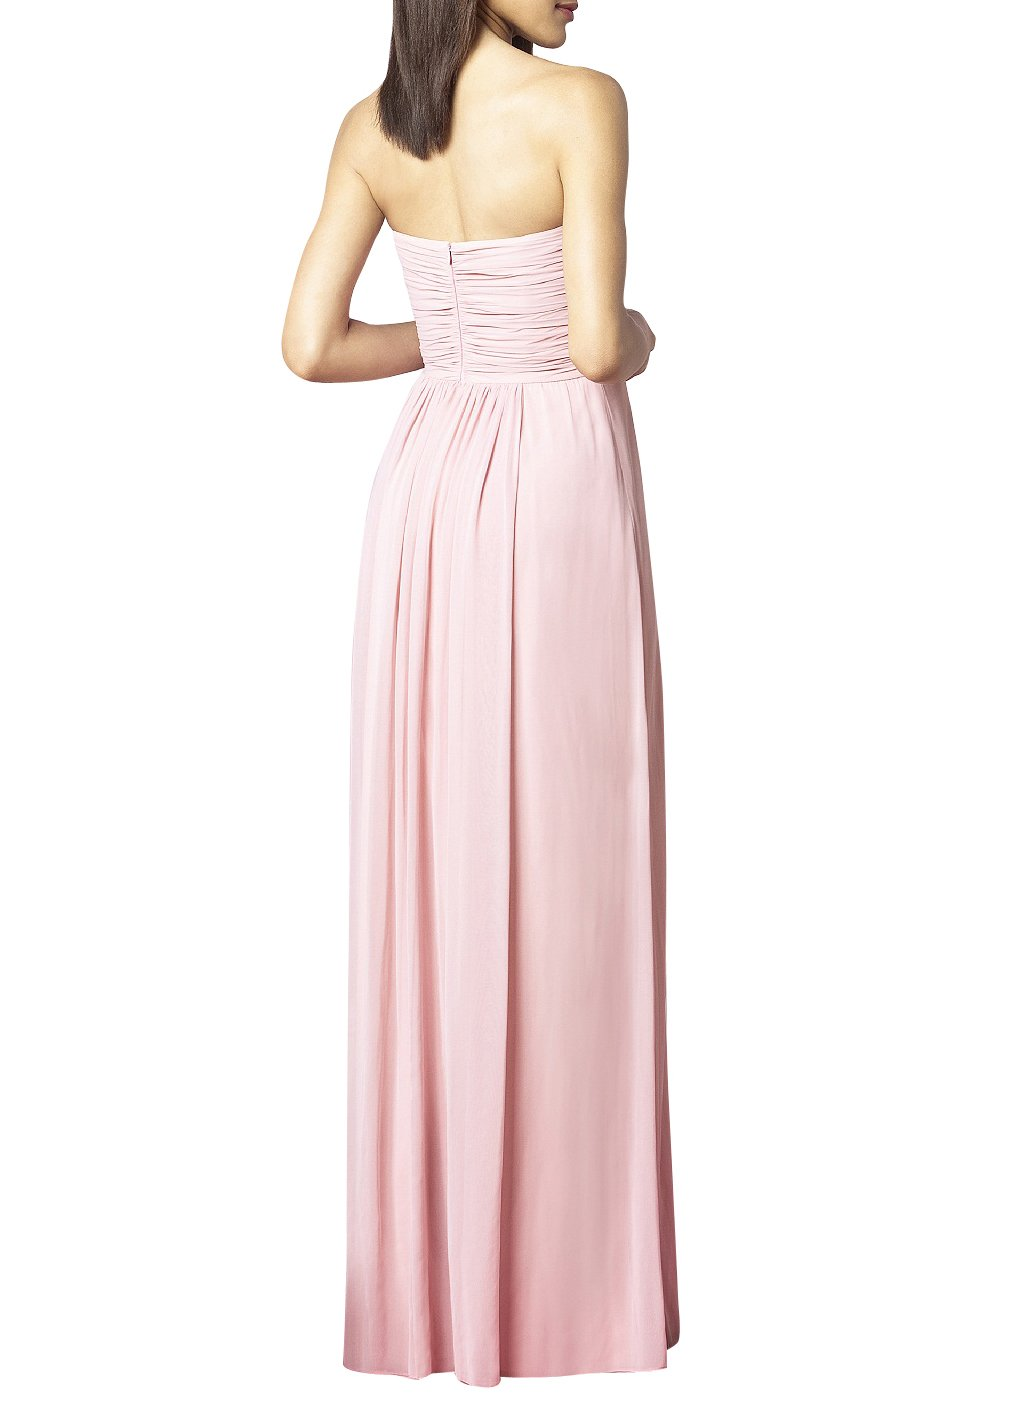 Yinhan Womens Floor Length Strapless Long Bridesmaid Dresses Prom Dresses Coral US 14 at Amazon Womens Clothing store: